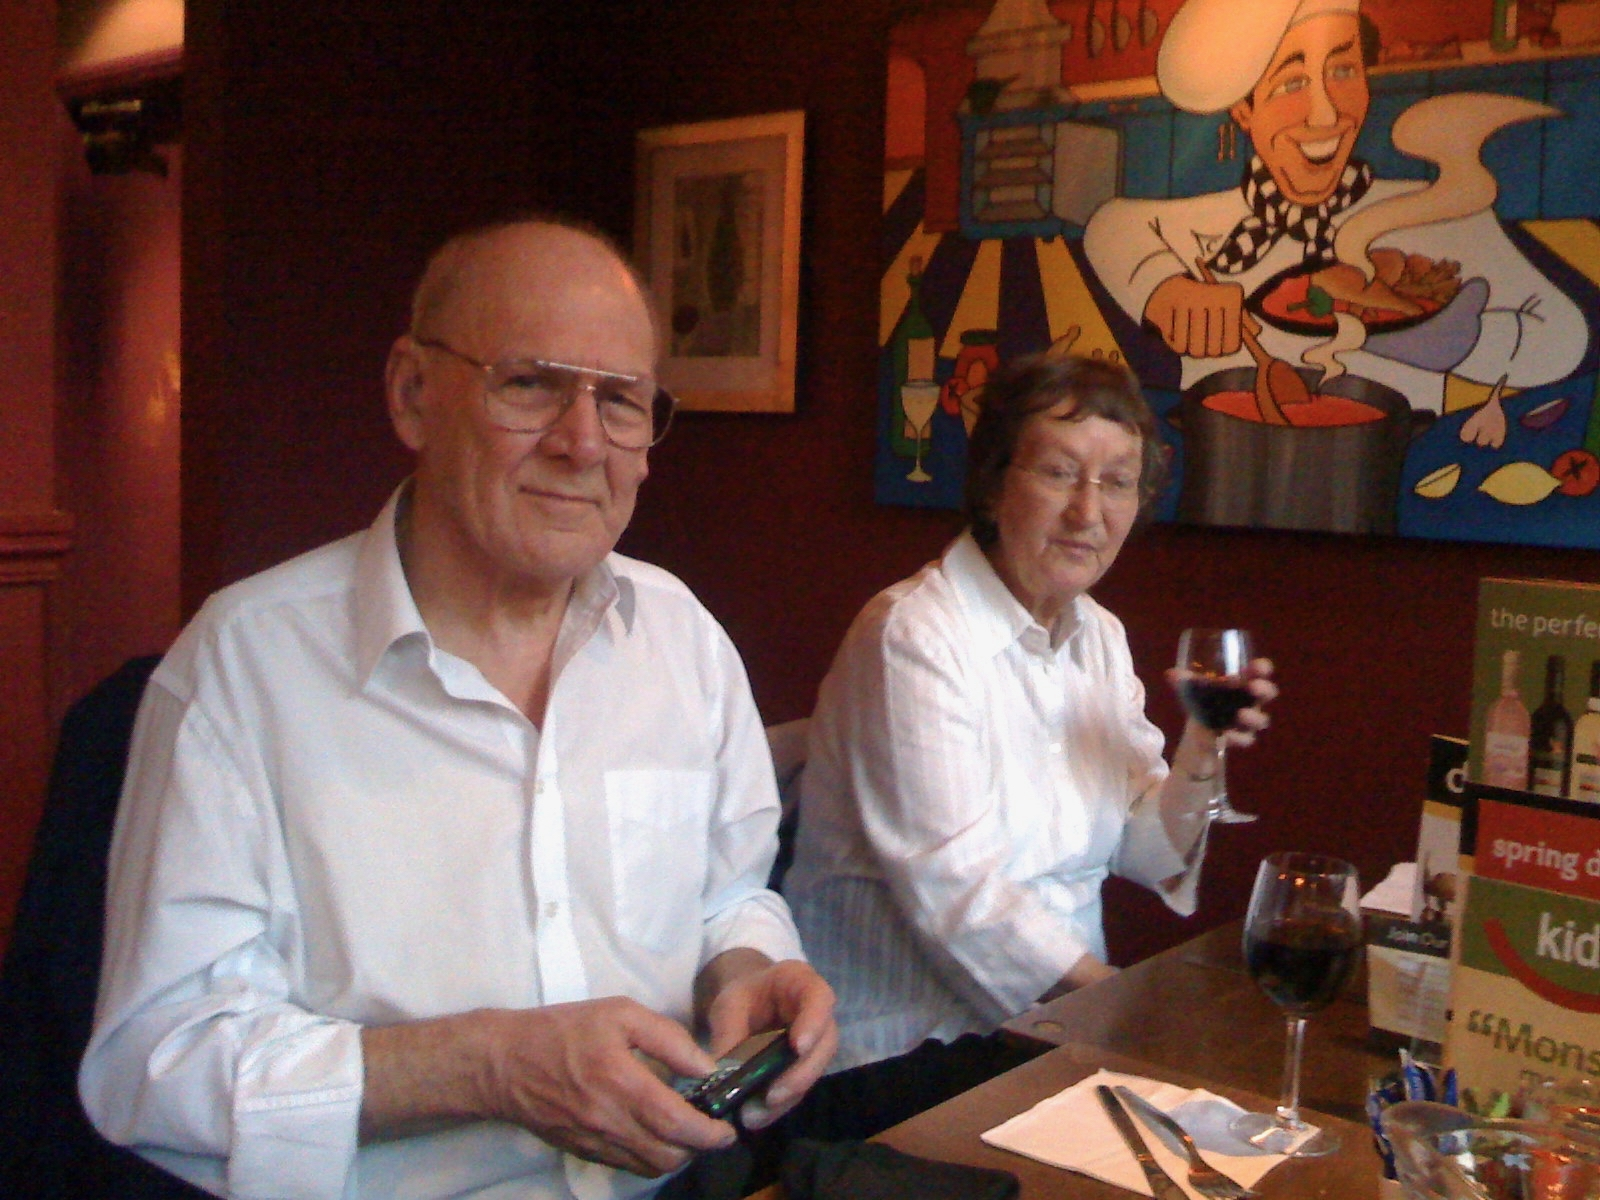 BPhotograph of the autho's parents, sat at a meal table, father with a camera, mother with a glass of wine